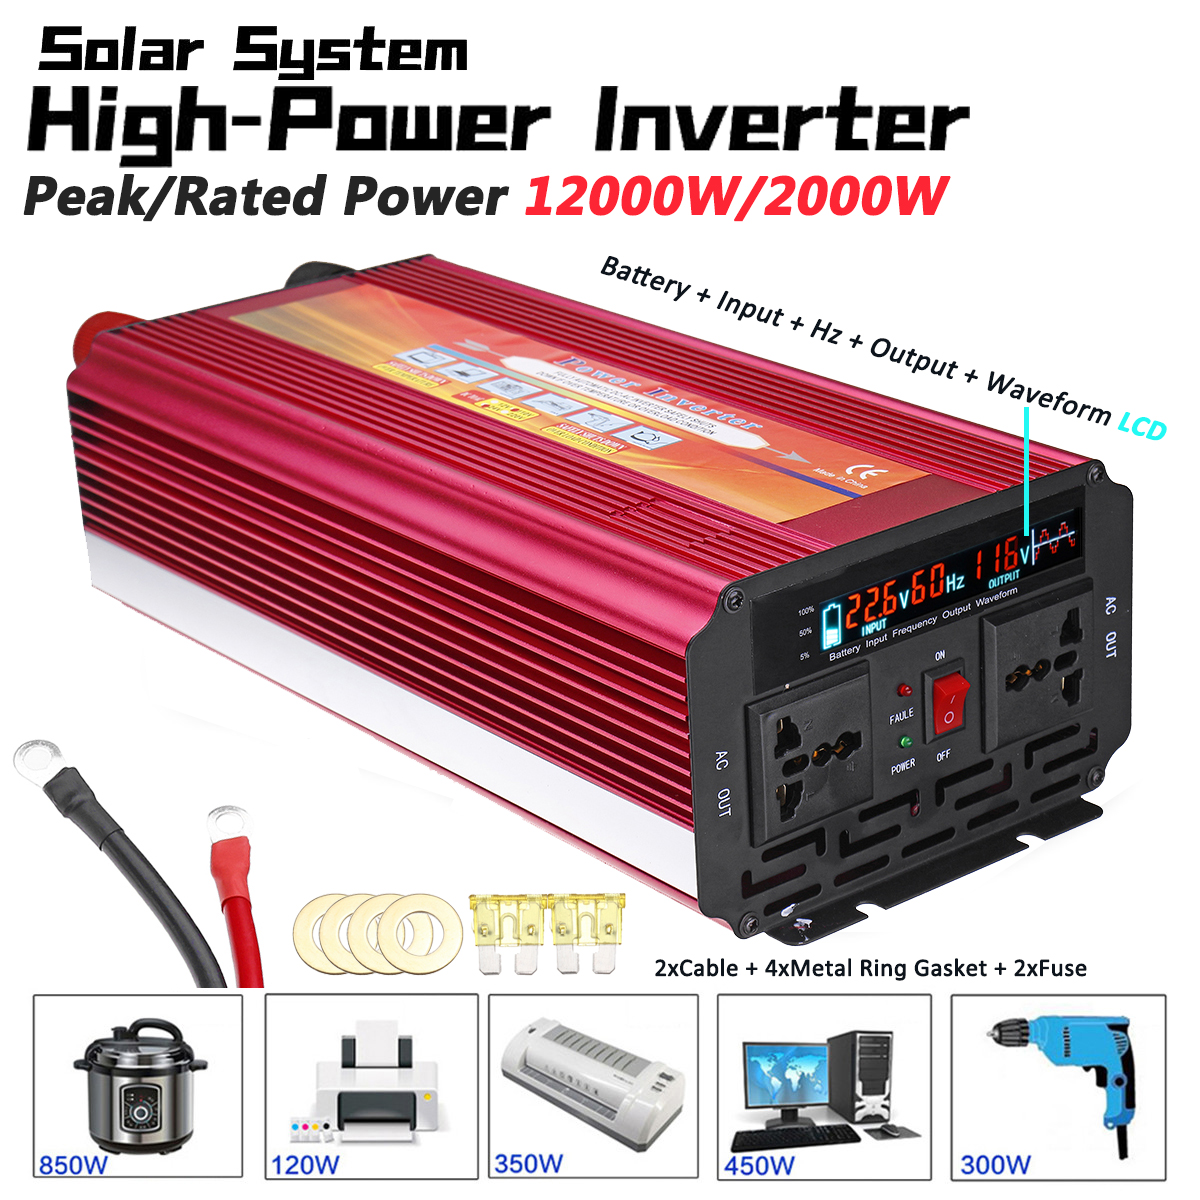 Solar Inverter 12V 220V 12000W P eak Voltage Transformer Converter DC 12V To AC 220V Car Inverter 12V/24V To 110V/220V LCD free shiping1pcs aju c10 10 100 10pcs ccmt060204 dia 10mm insertable bore drilling end mill cutting tools arbor for ccmt060204